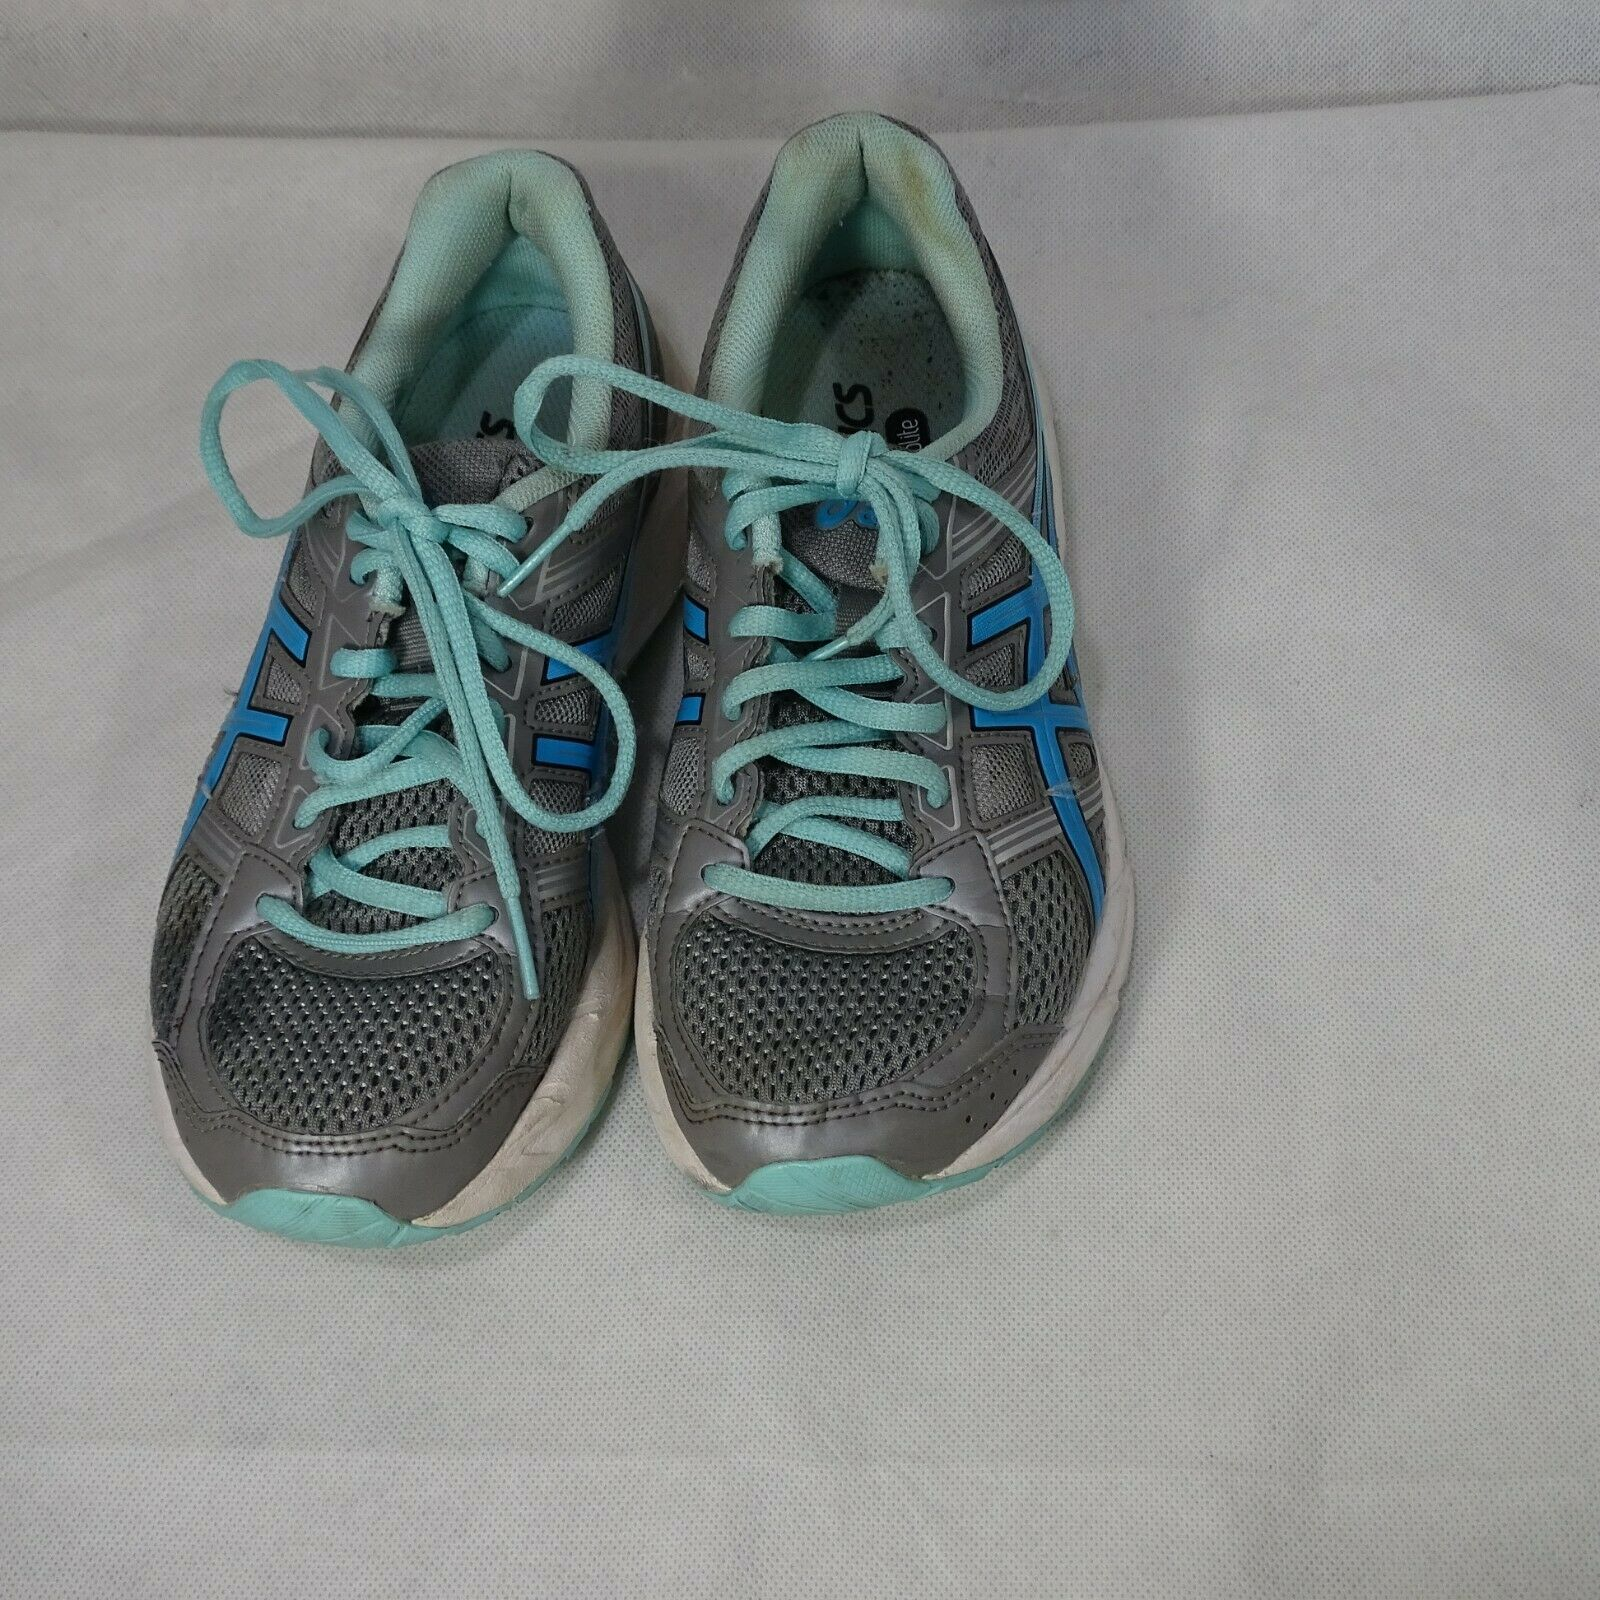 Asics Gel-Contend 4 Ortholite Sneakers Shoes Mesh Women Size 7 Gray Blue T767Q image 6